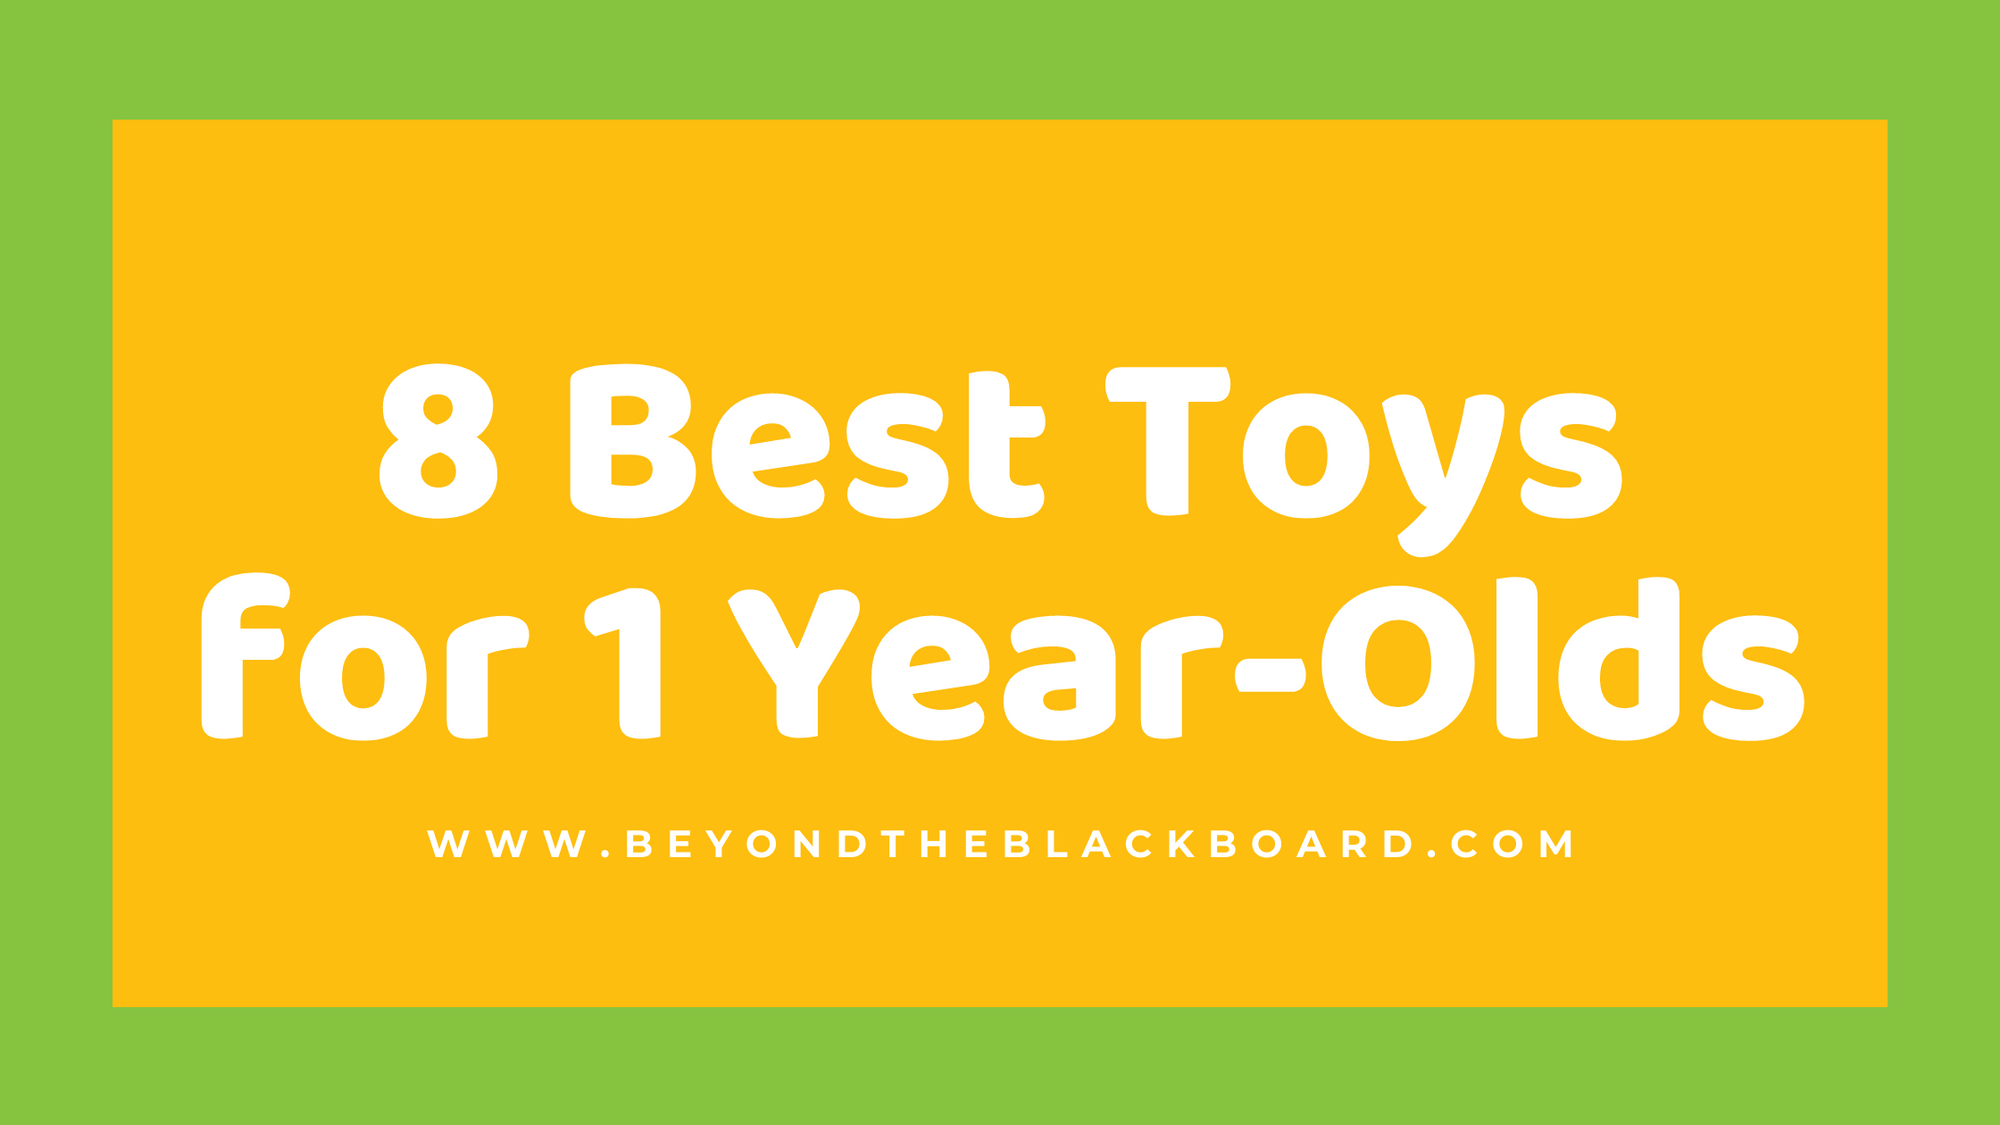 8 Best Toys for 1 Year-Olds, www.beyondtheblackboard.com